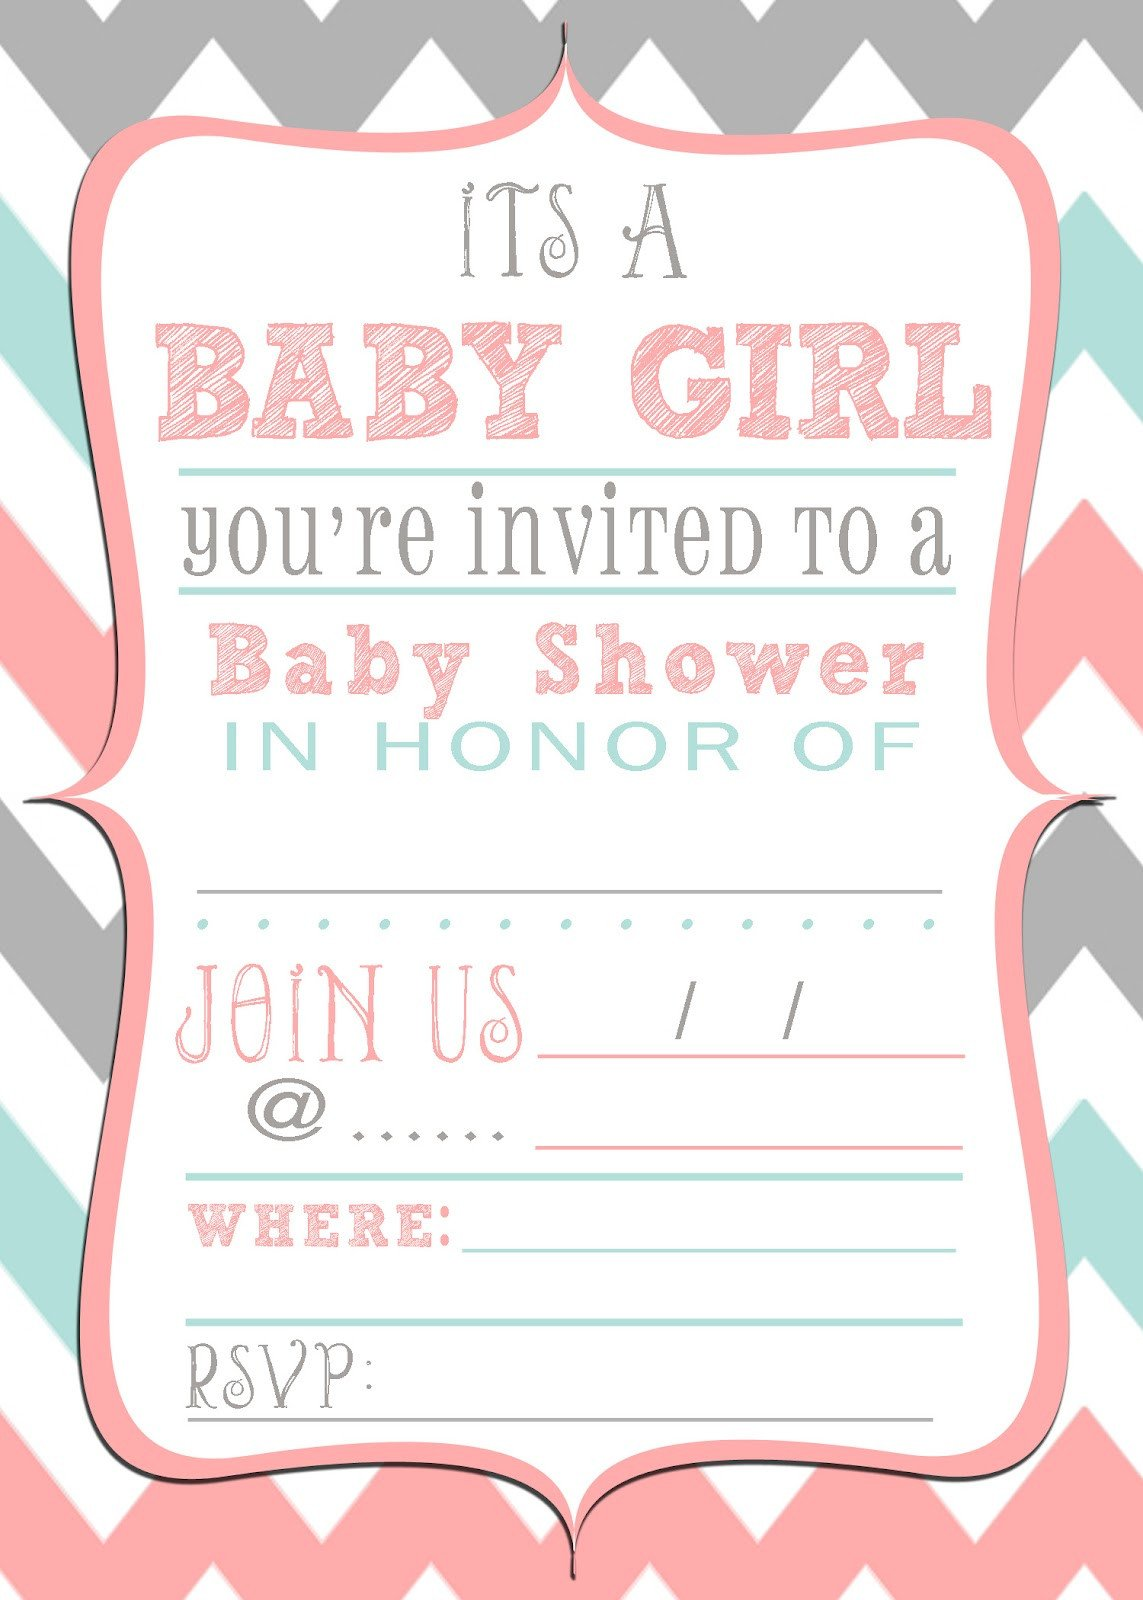 Baby Shower Invite Templates Mrs This and that Baby Shower Banner Free Downloads